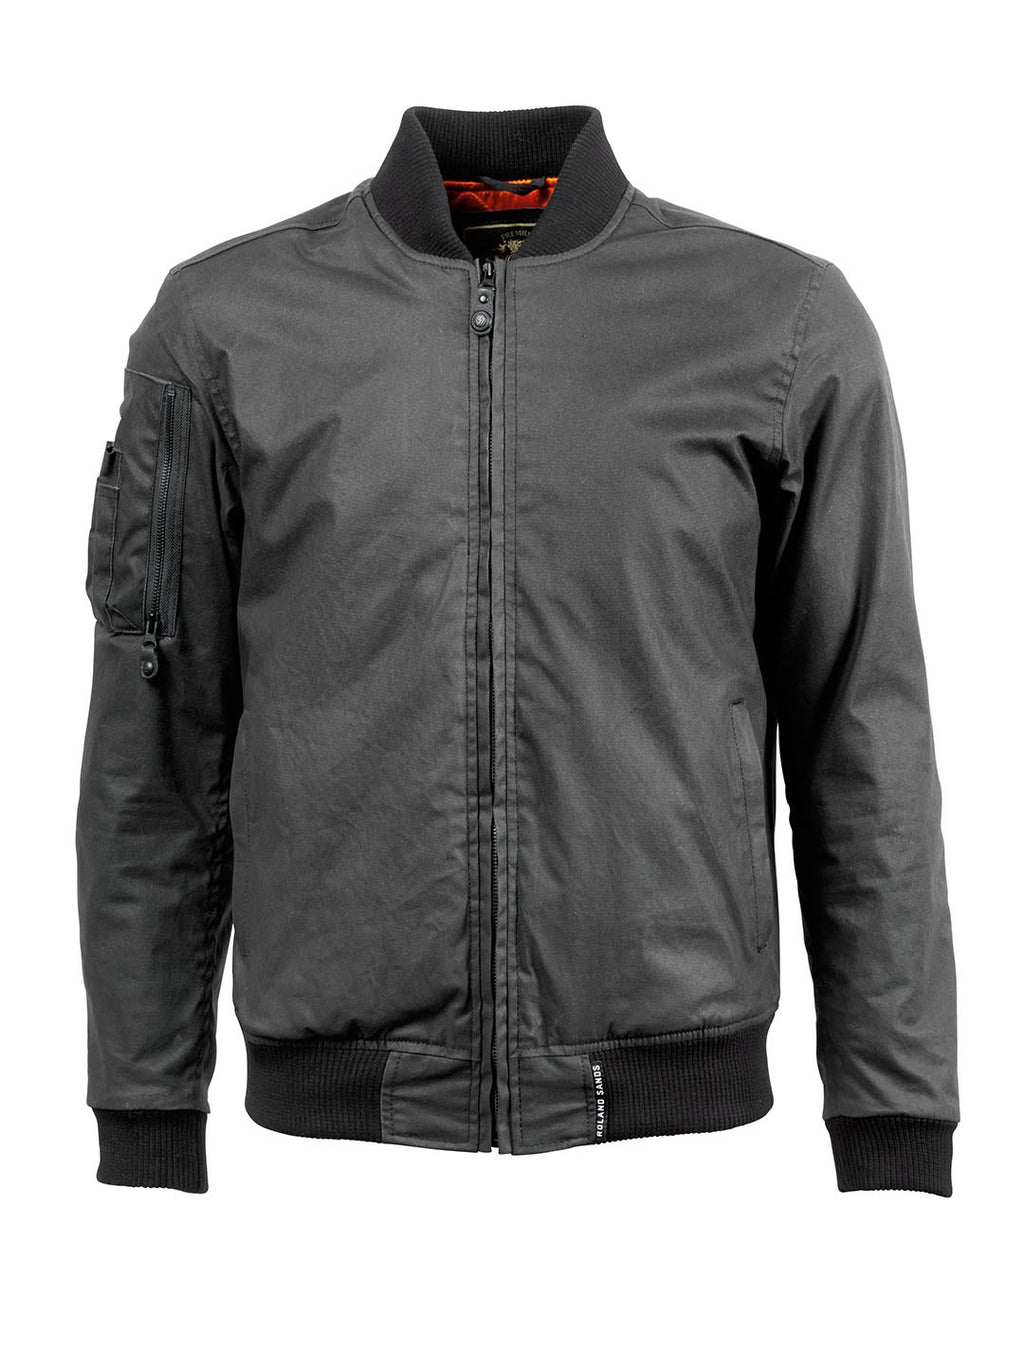 RSD (Roland Sands Design) Squad Jacket - Black - Ton-Up New Zealand - Motorcycle Helmets, Clothing & Accessories